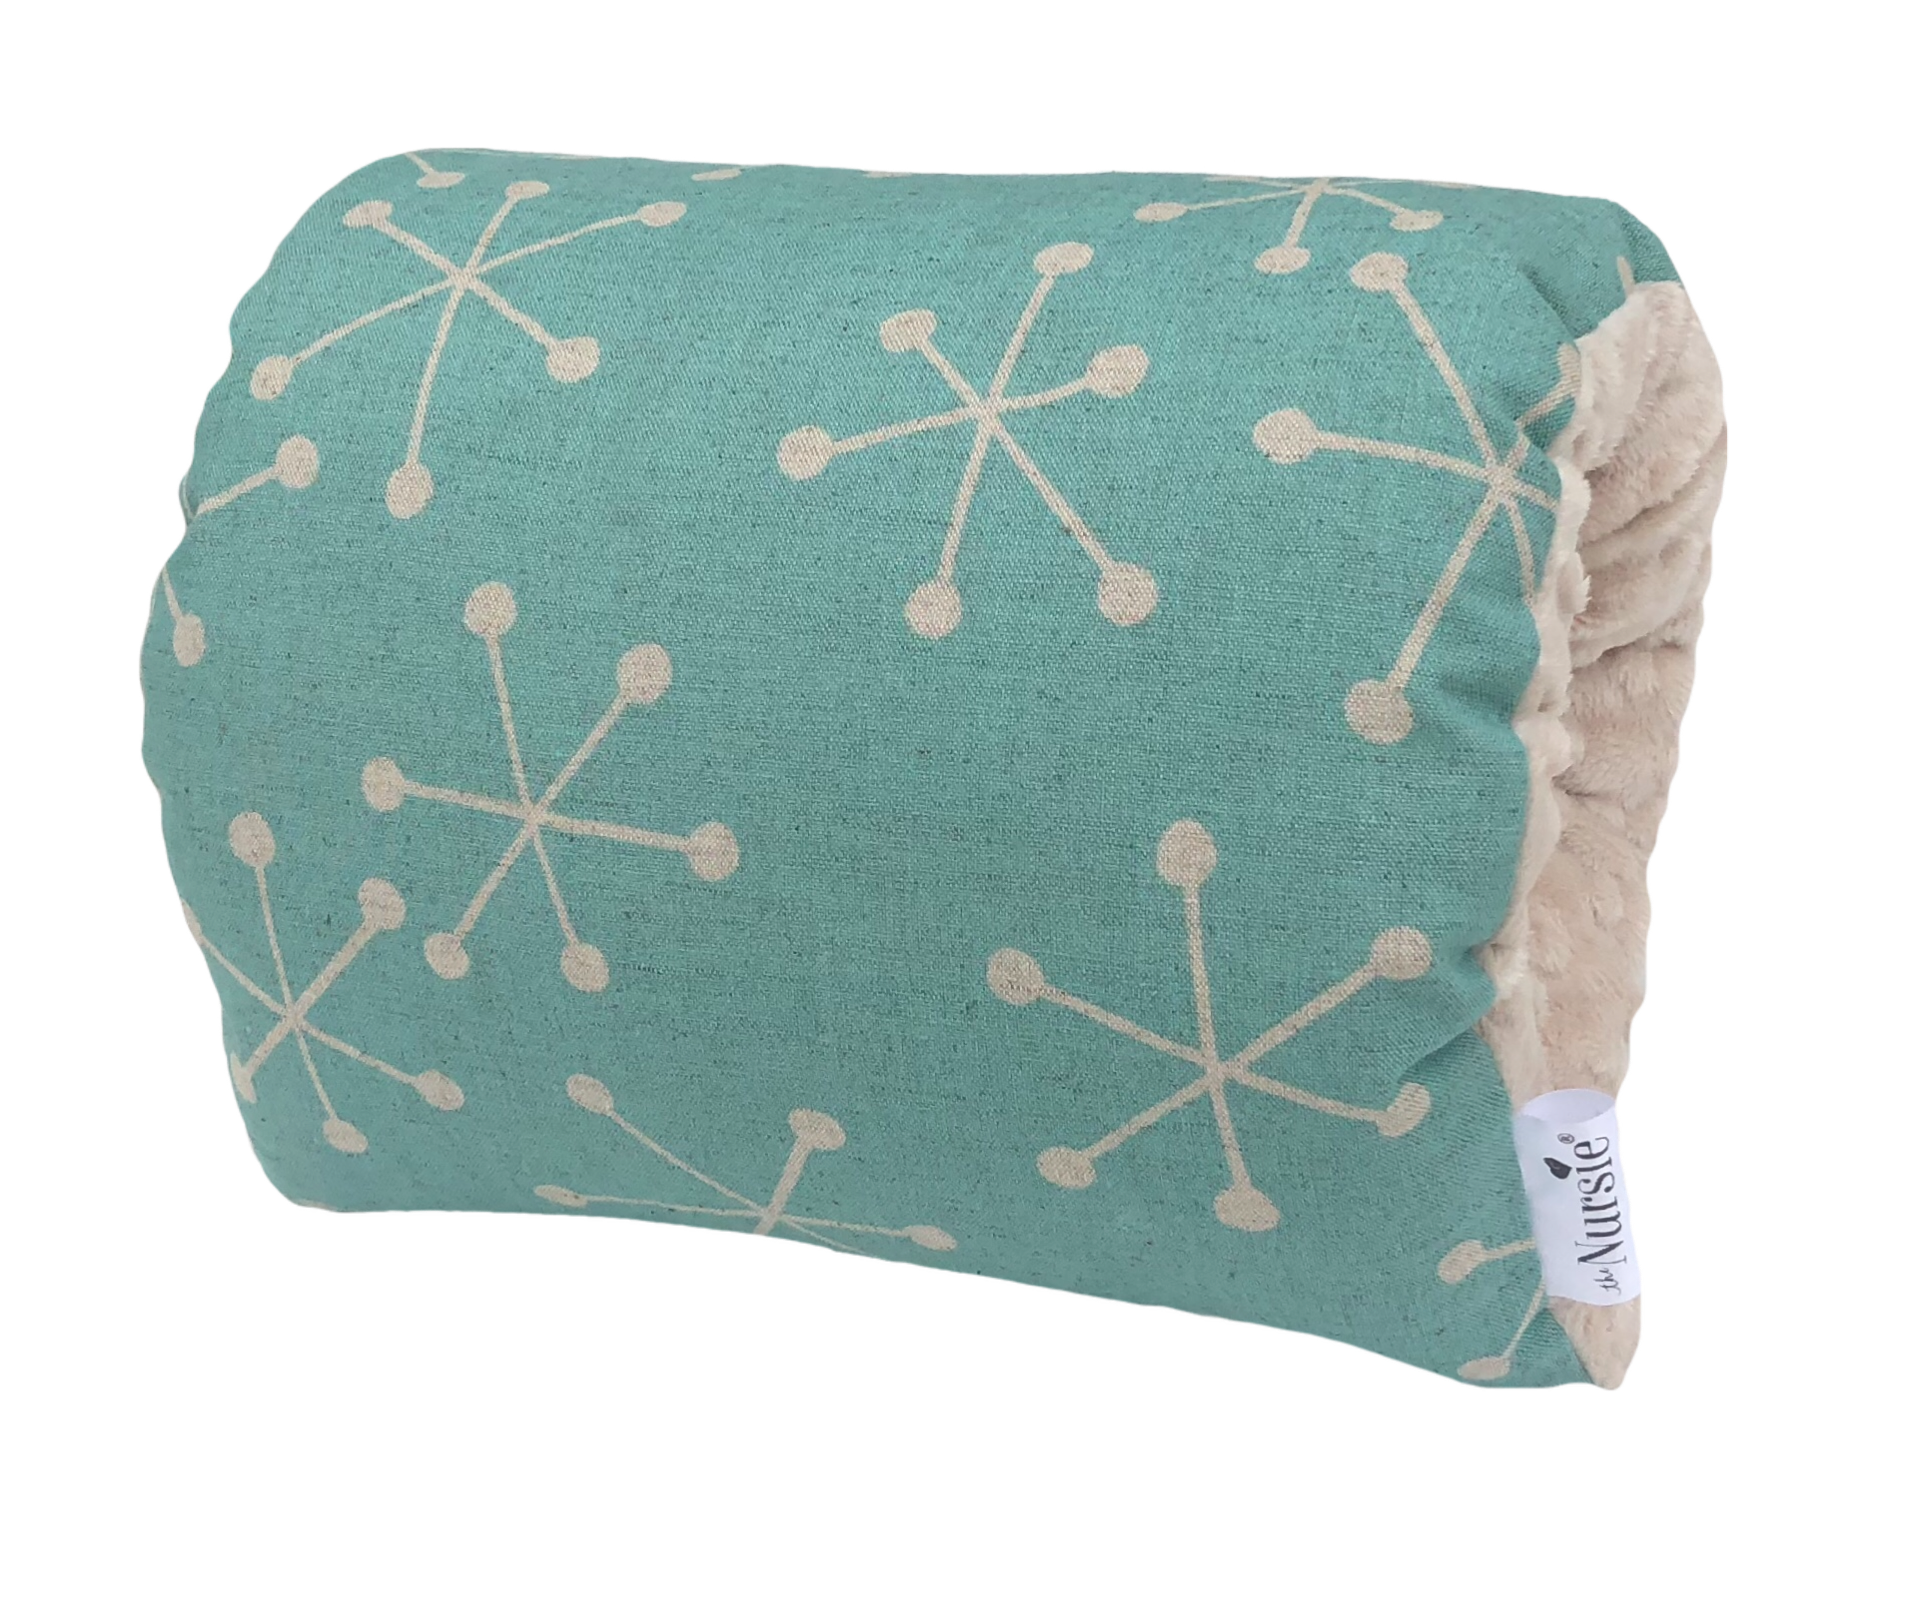 Jax Nursie | Breastfeeding Arm Pillow | Travel Nursing Pillow | Gender Neutral - The Nursie